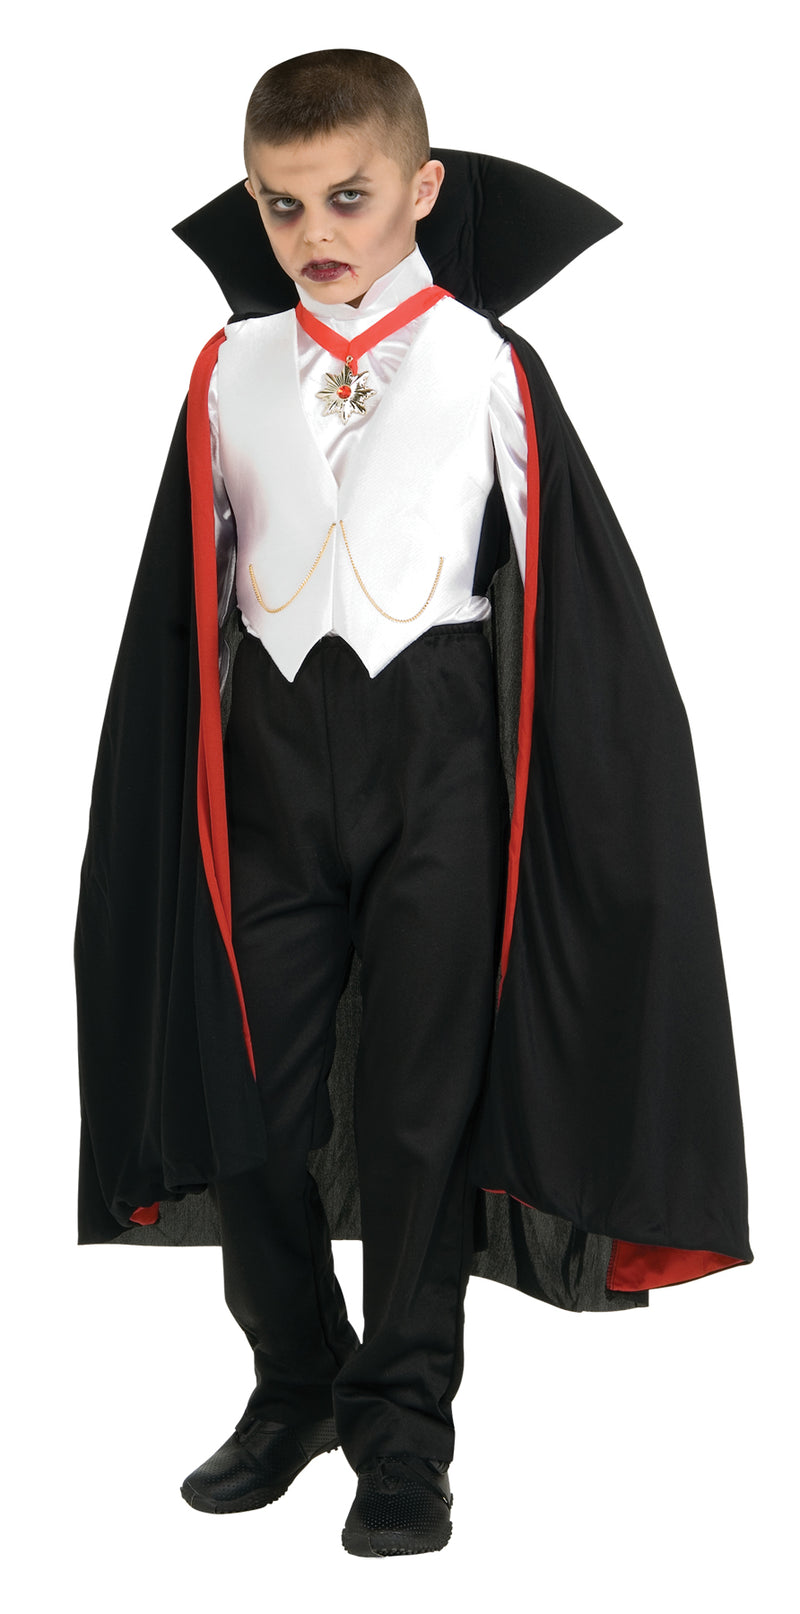 UNIVERSAL MONSTERS - Dracula Child's Costume Medium-Costume-1-RU-882819MD-Classic Horror Shop